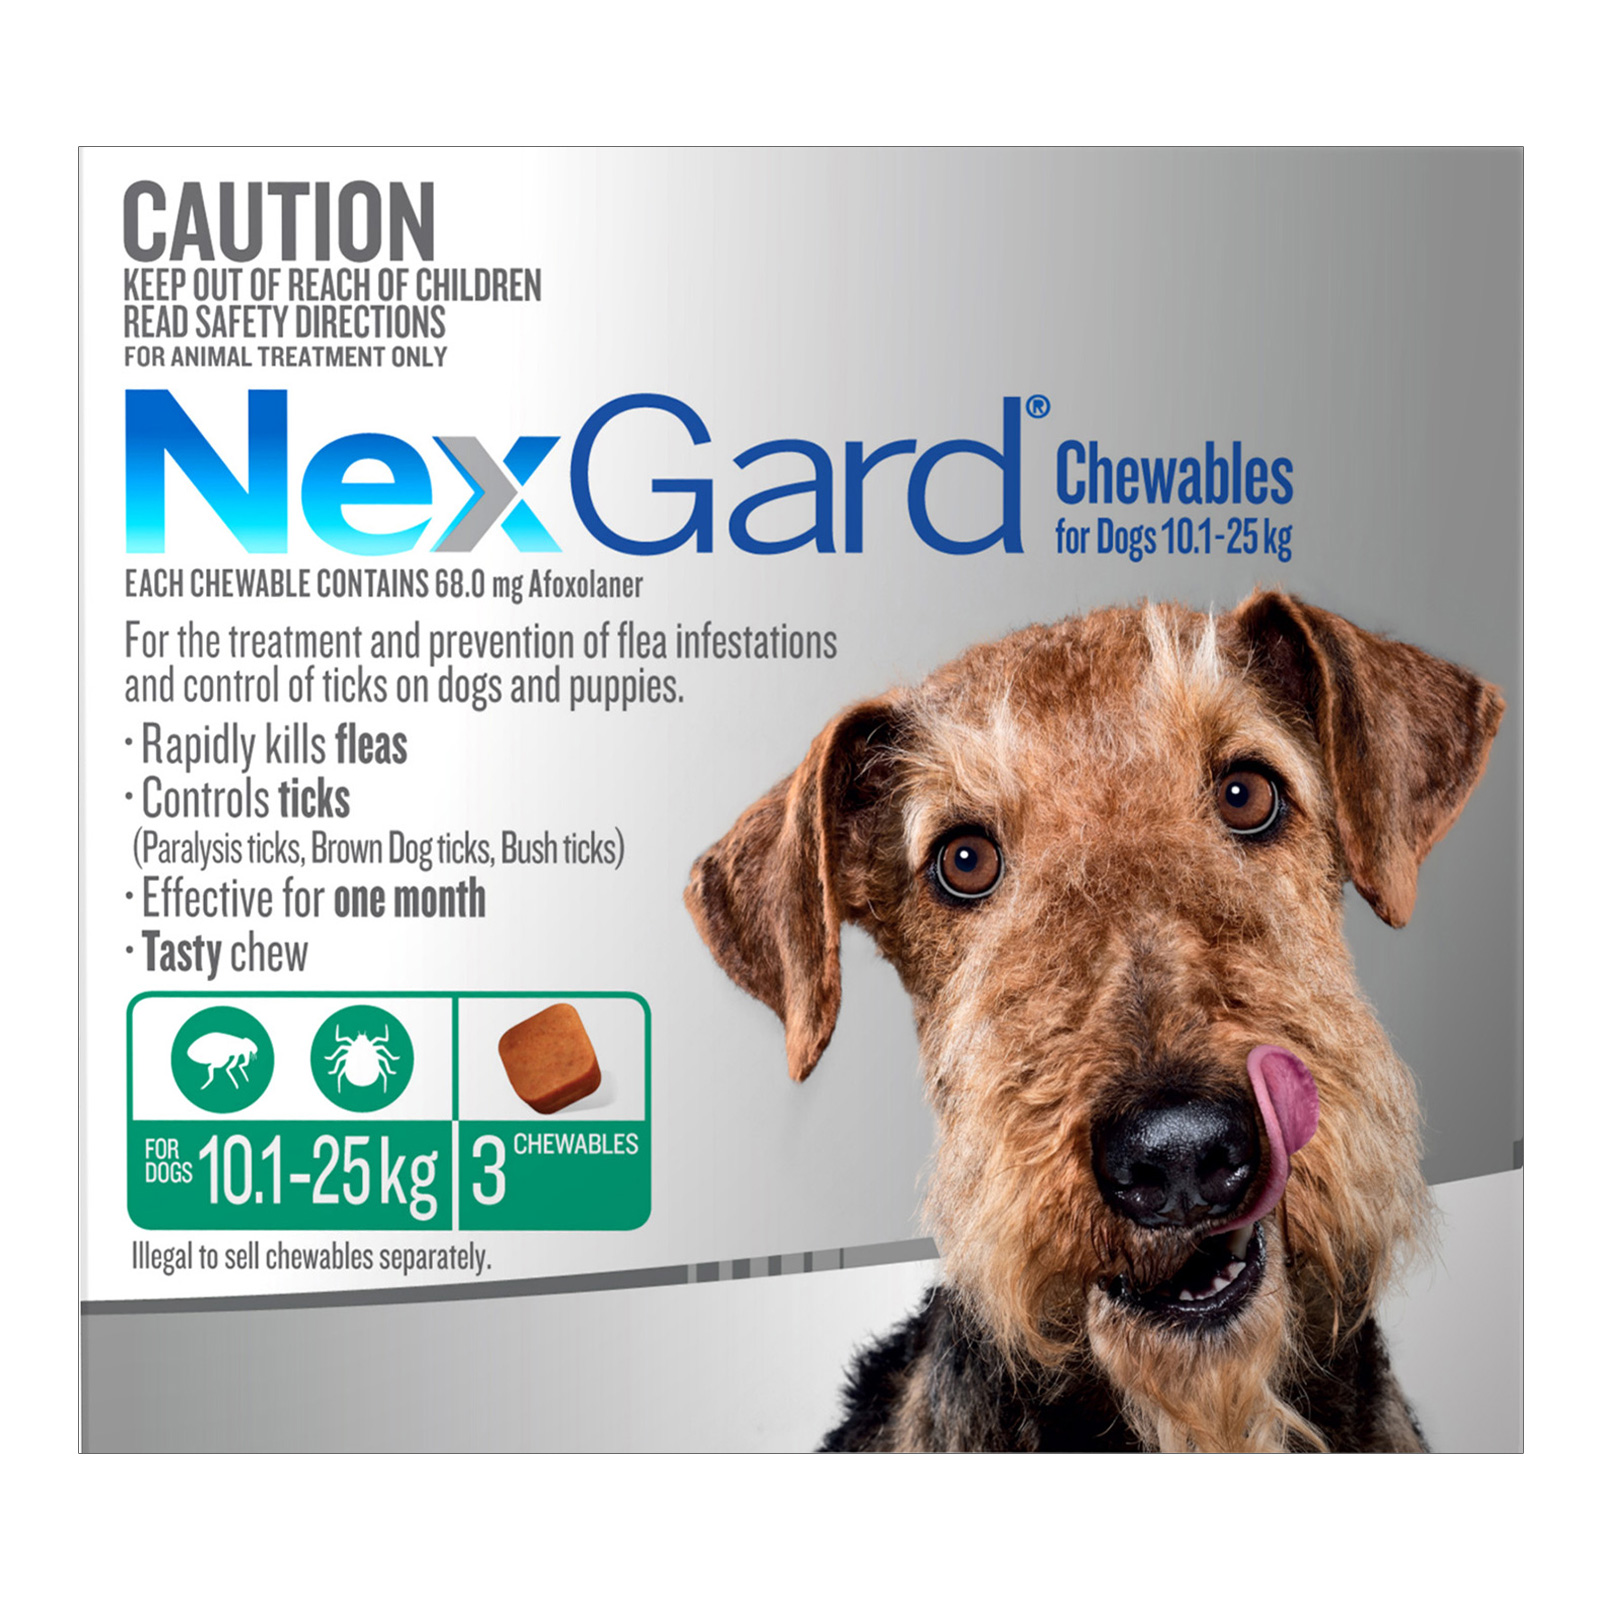 Chewables For Medium Dogs (10.1 - 25 Kg) Green